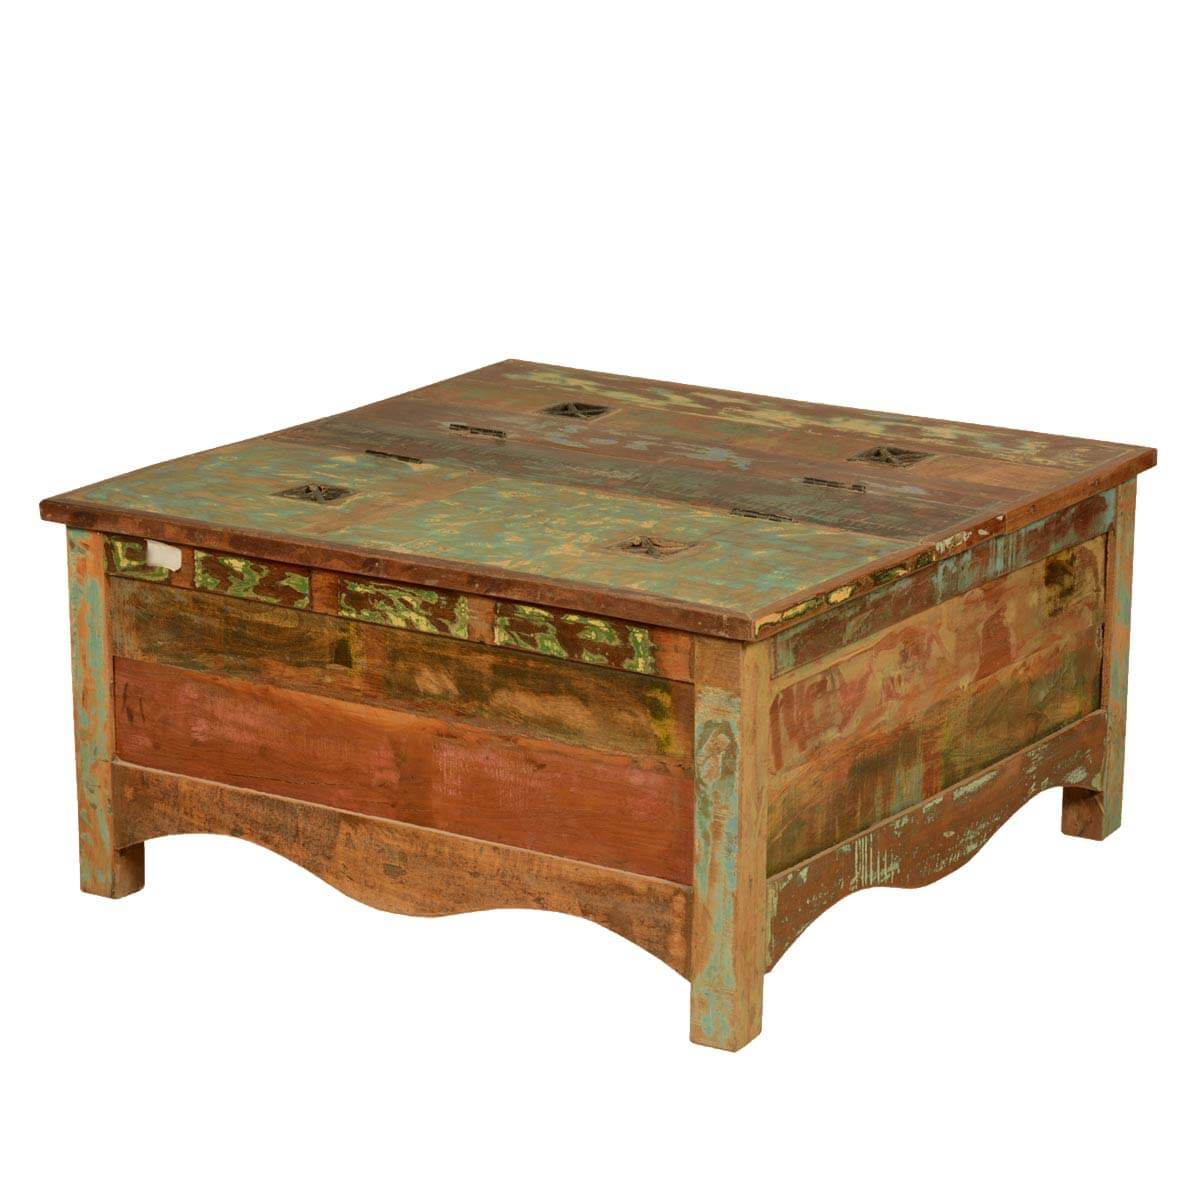 Rustic reclaimed wood 35 5 square double top coffee table chest Recycled wood coffee table